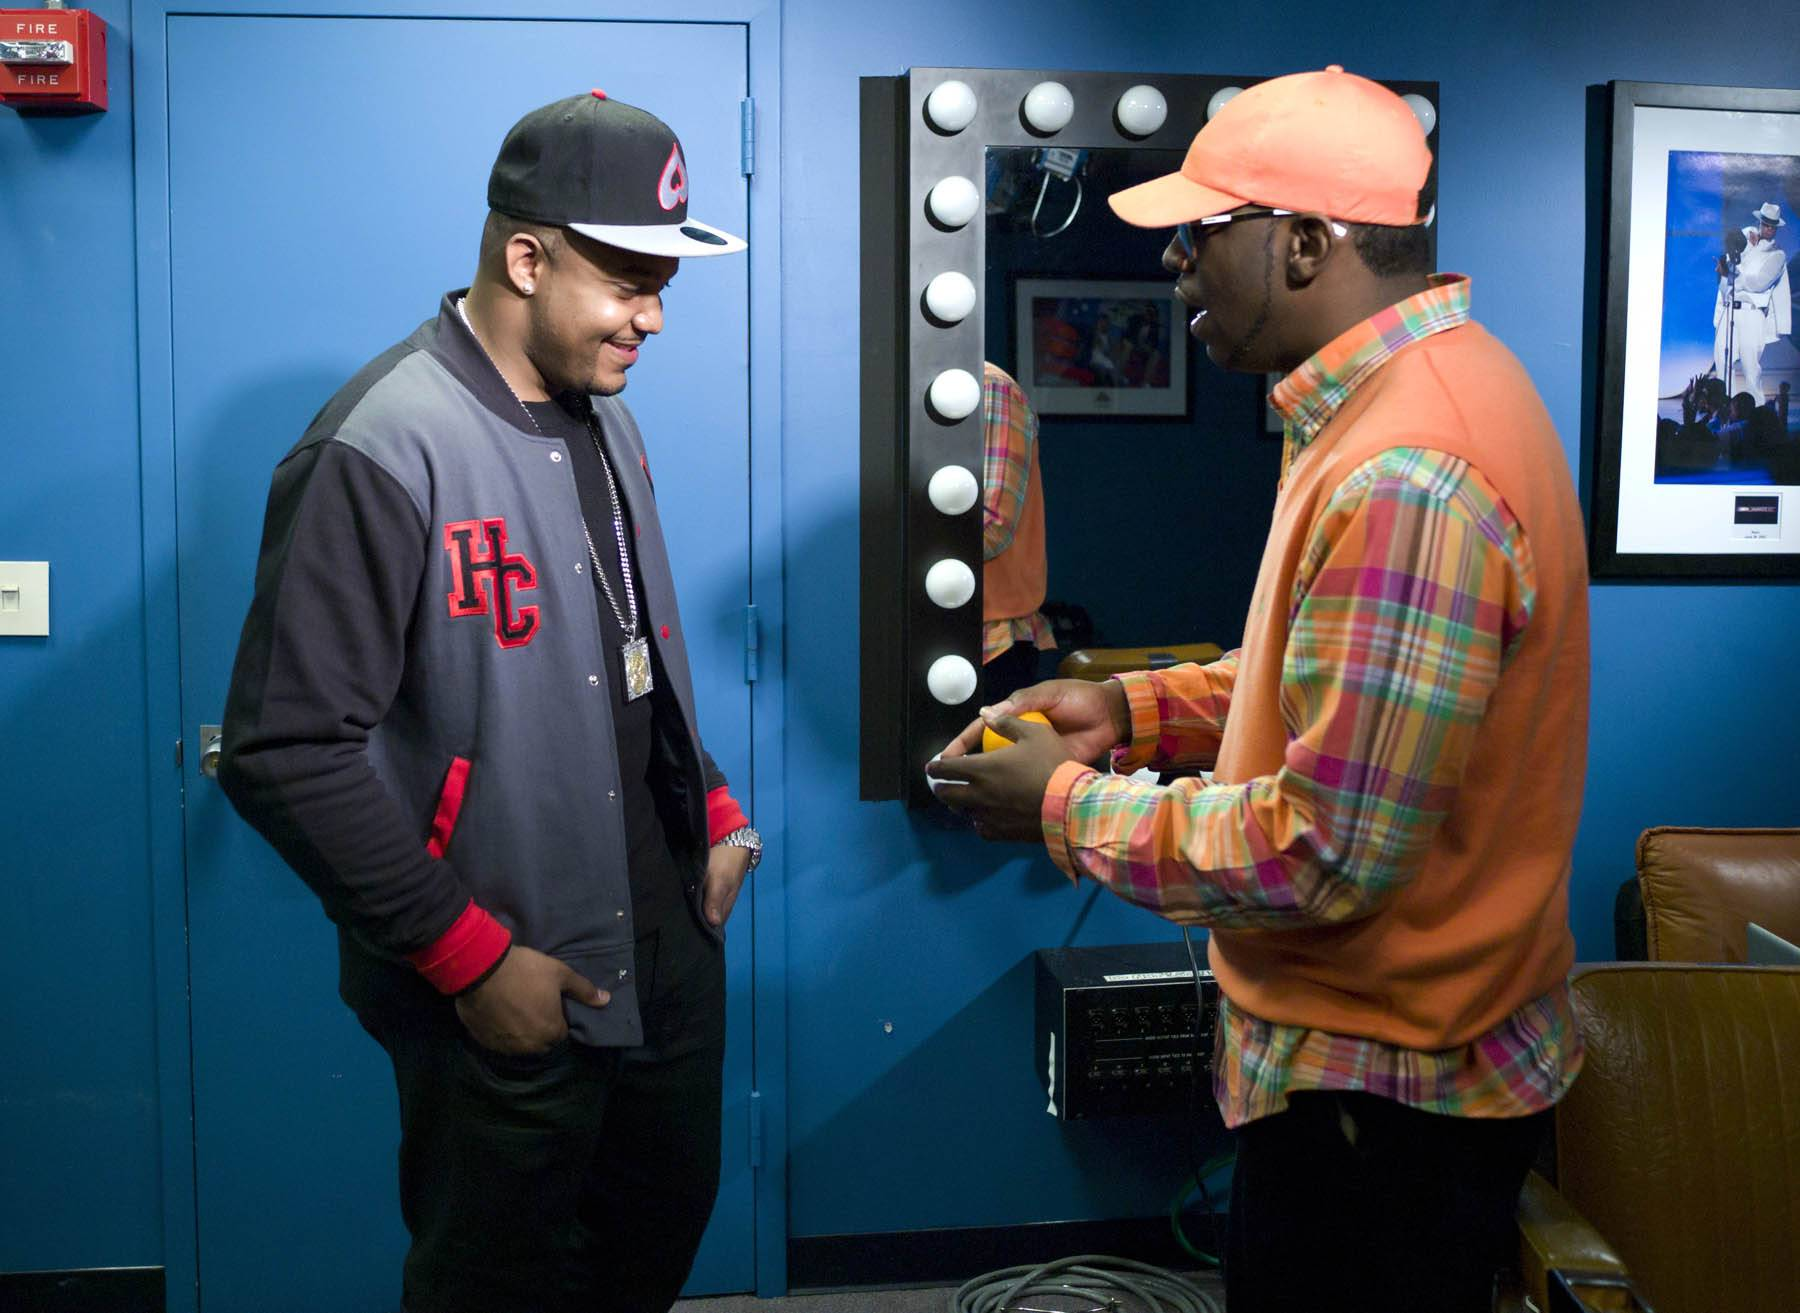 It's Going Down - DJ Boof and Young Dro in the green room at 106 & Park, January 27, 2012. (Photo: John Ricard / BET)